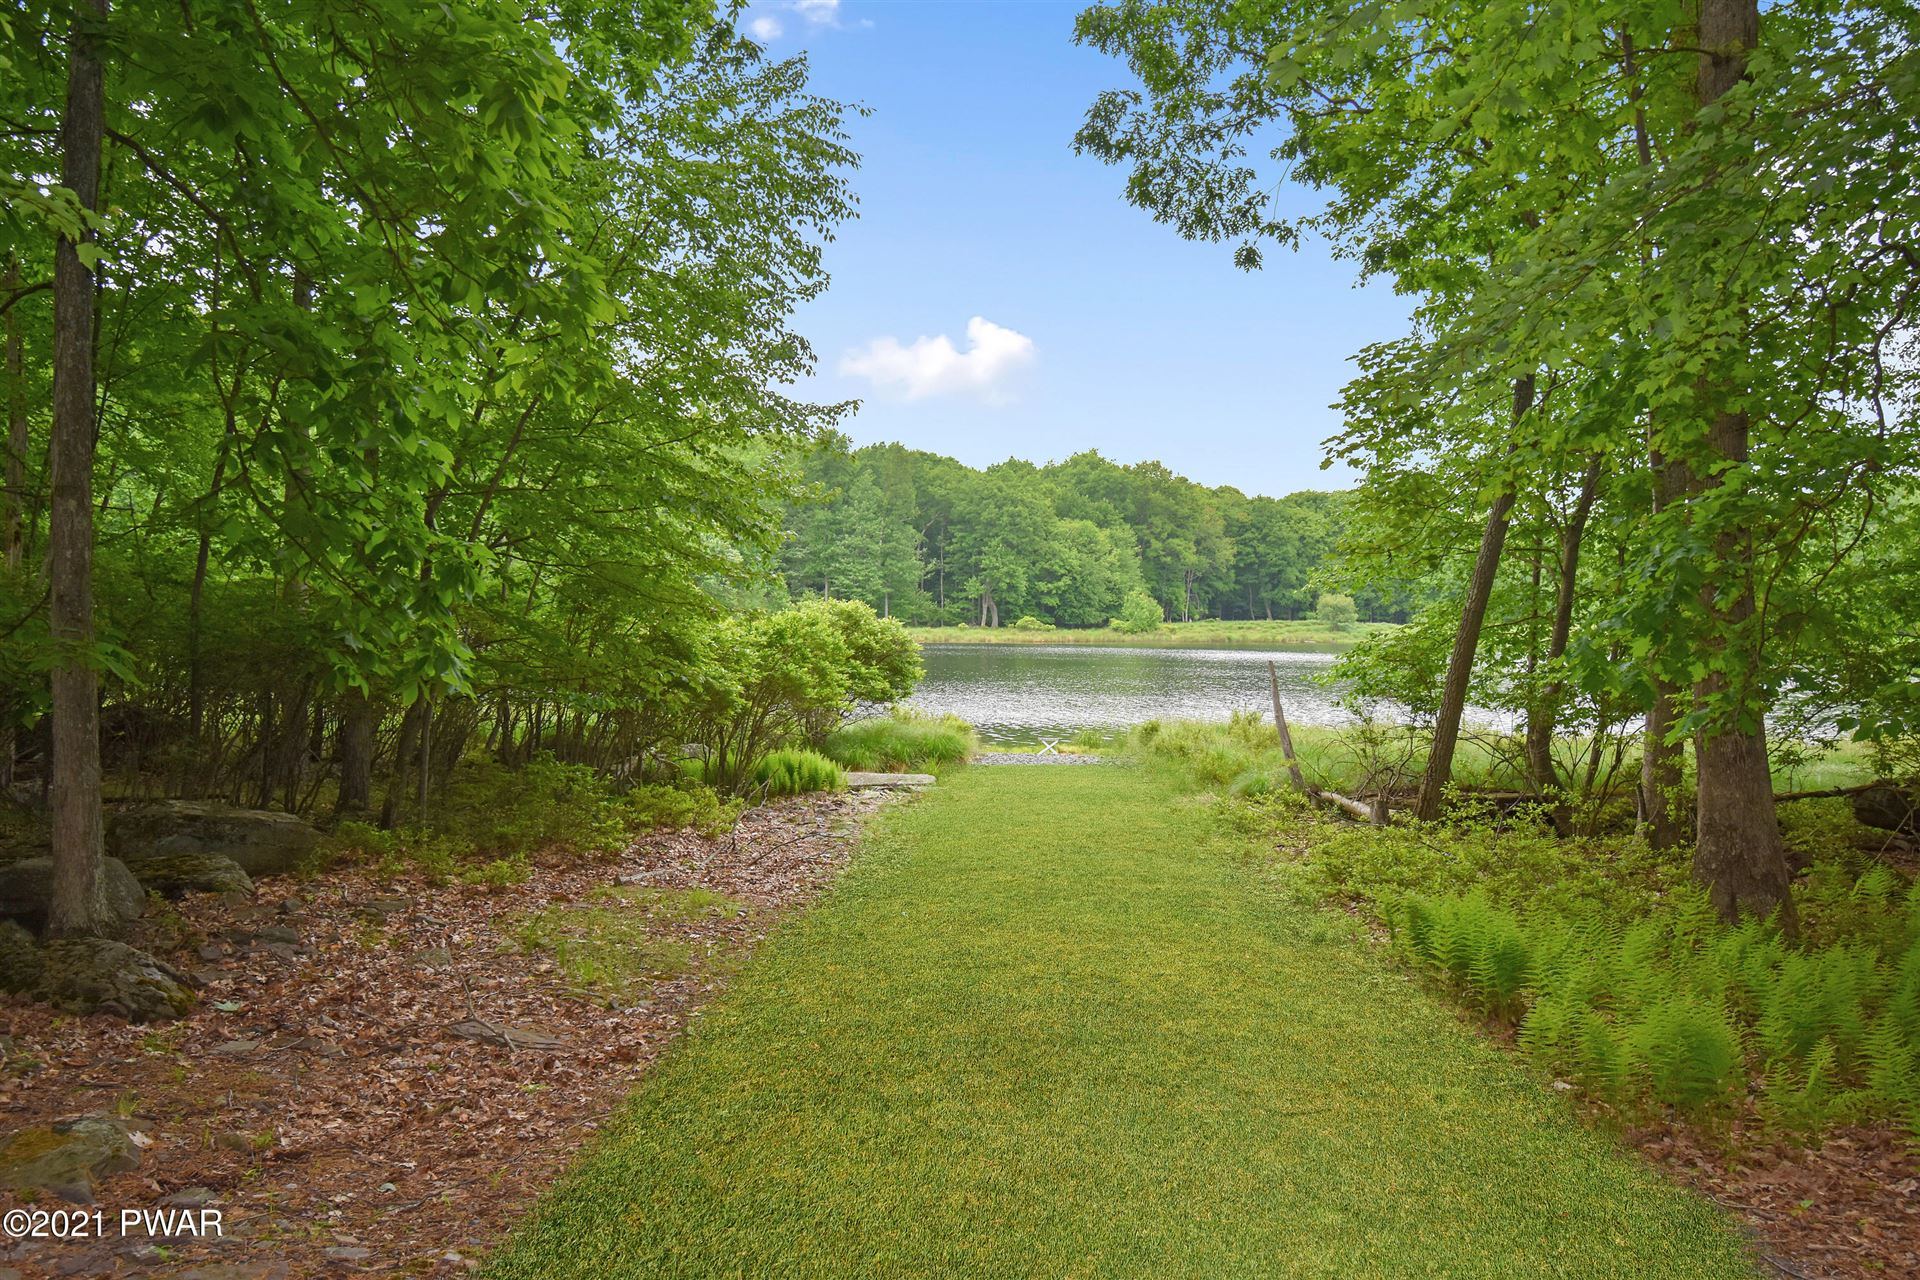 Photo of 131 High Meadow Dr, Milford, PA 18337 (MLS # 21-2037)